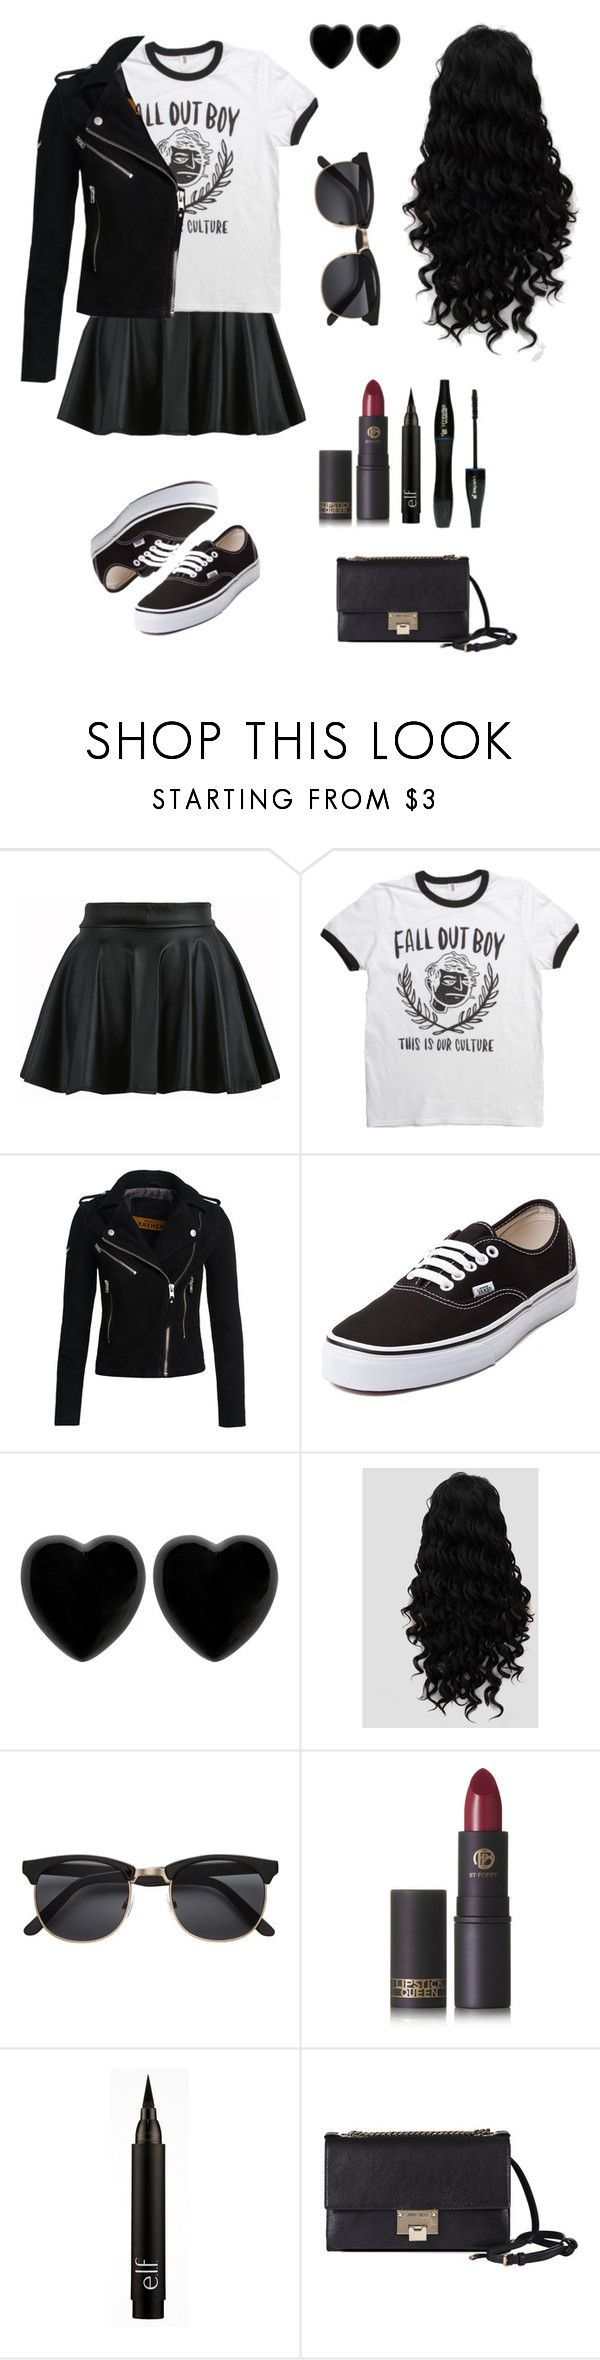 """""""Fall Out Boy"""" by an-internet-girl ❤ liked on Polyvore featuring Superdry, Vans, Dollydagger, Lipstick Queen, Lancôme, Jimmy Choo, music, fandom and falloutboy"""